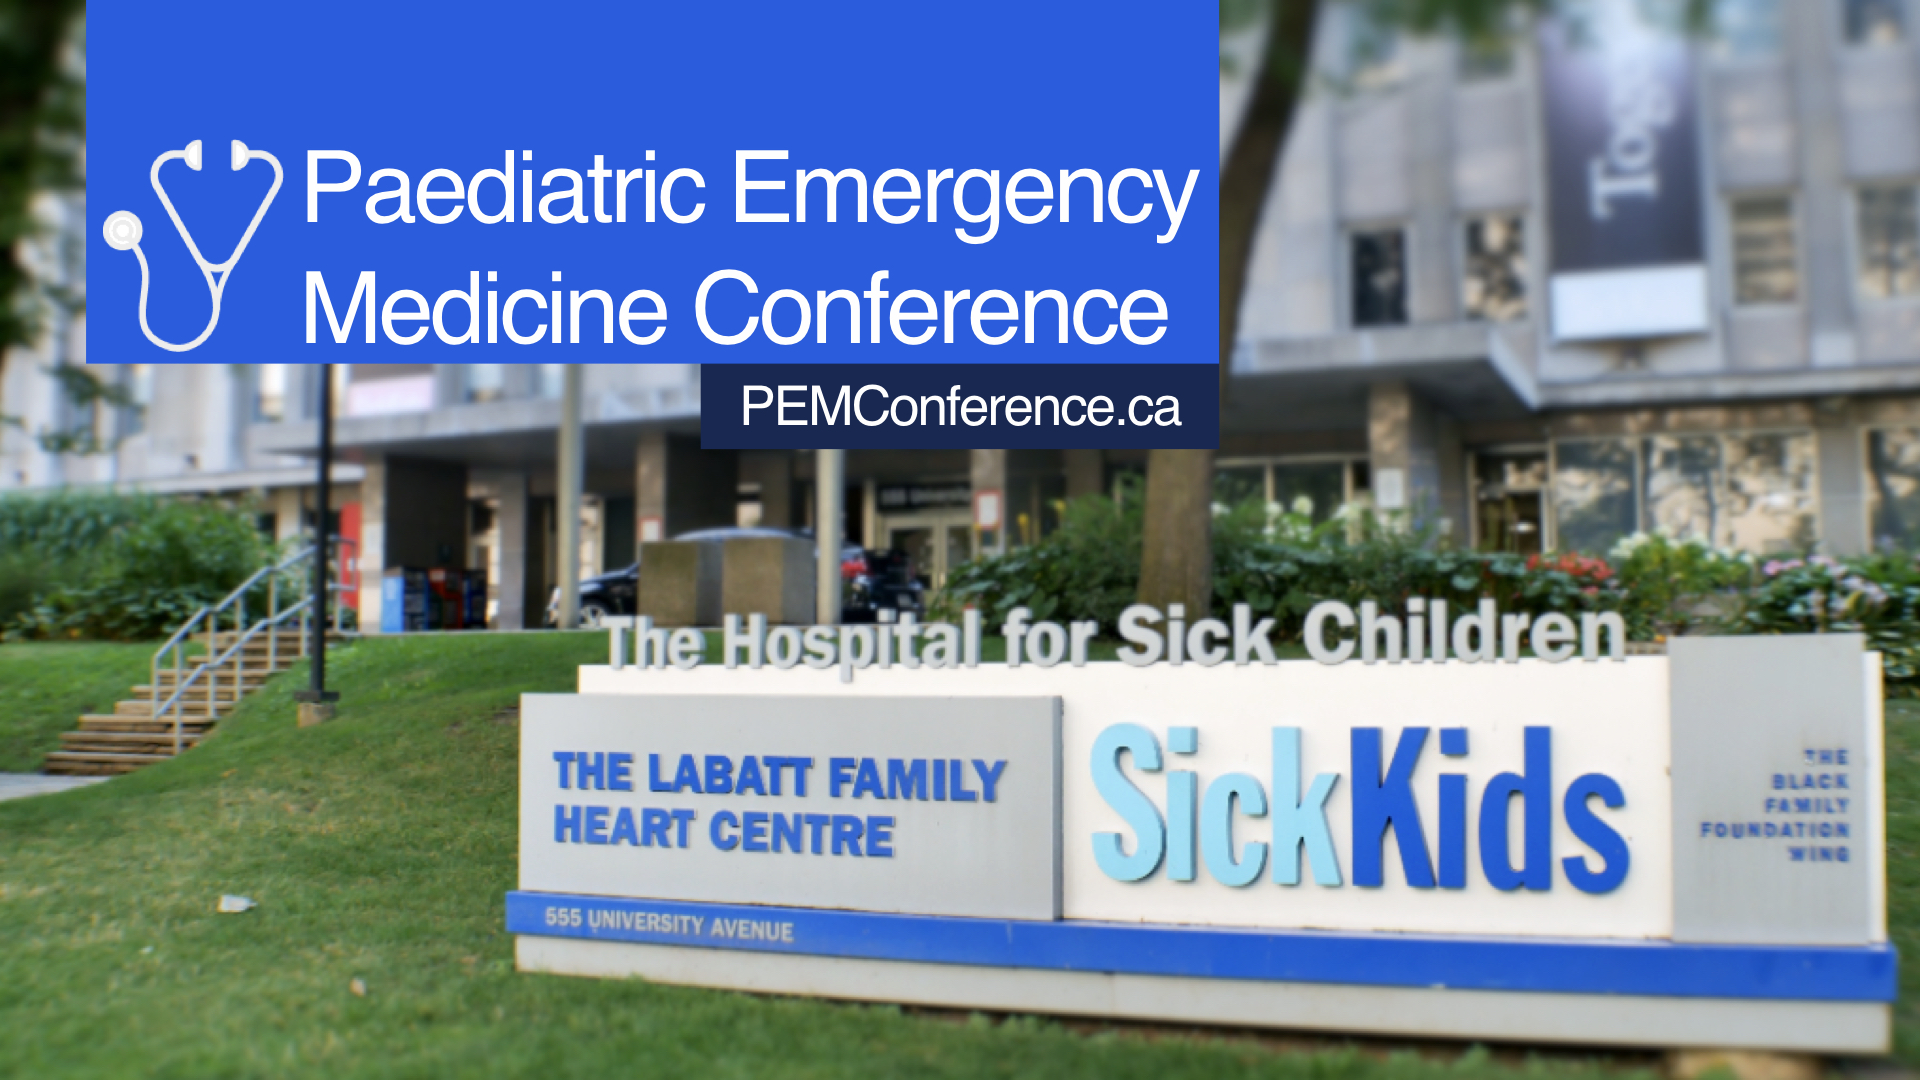 SickKids' 16th Annual Paediatric Emergency Medicine Conference